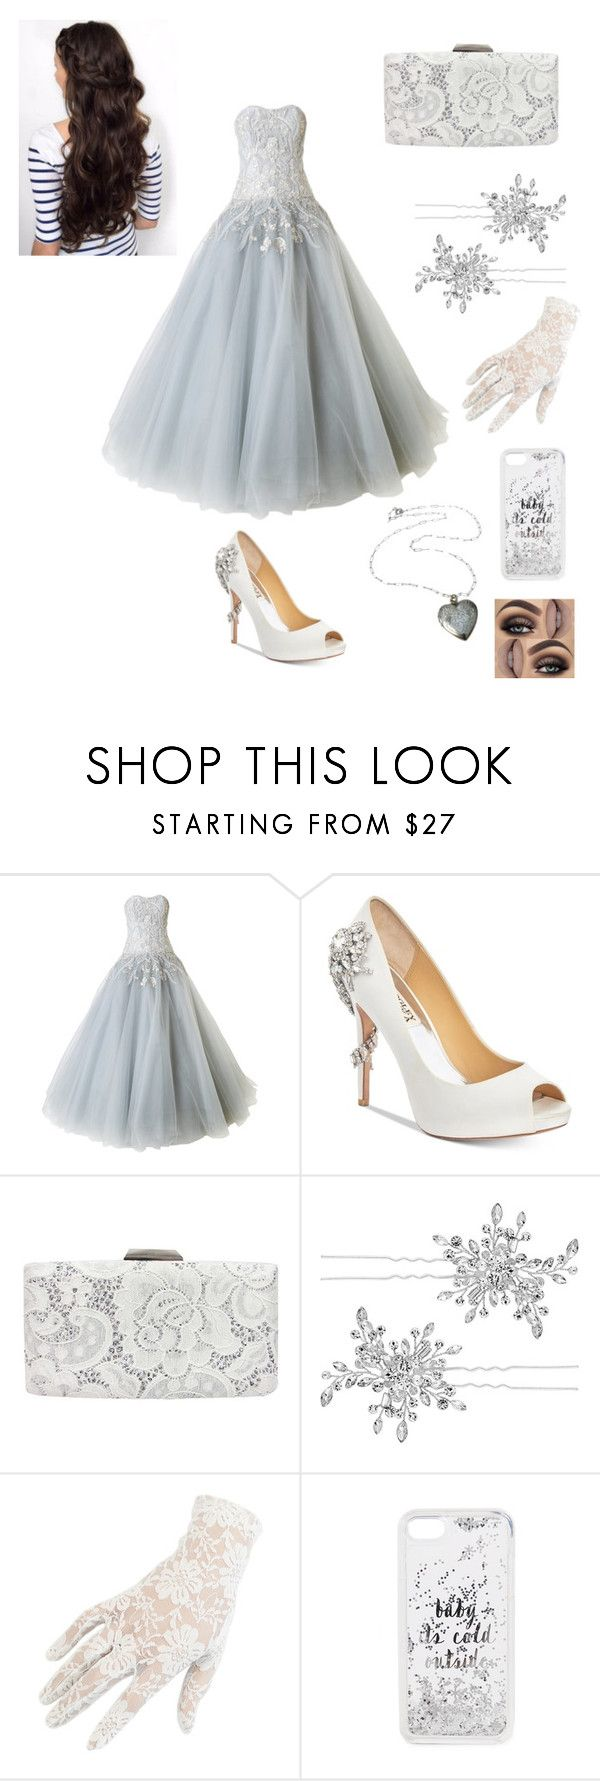 """Untitled #78"" by skyepicness on Polyvore featuring Marchesa, Badgley Mischka, Sondra Roberts, Matthew Williamson, Black and Kate Spade"